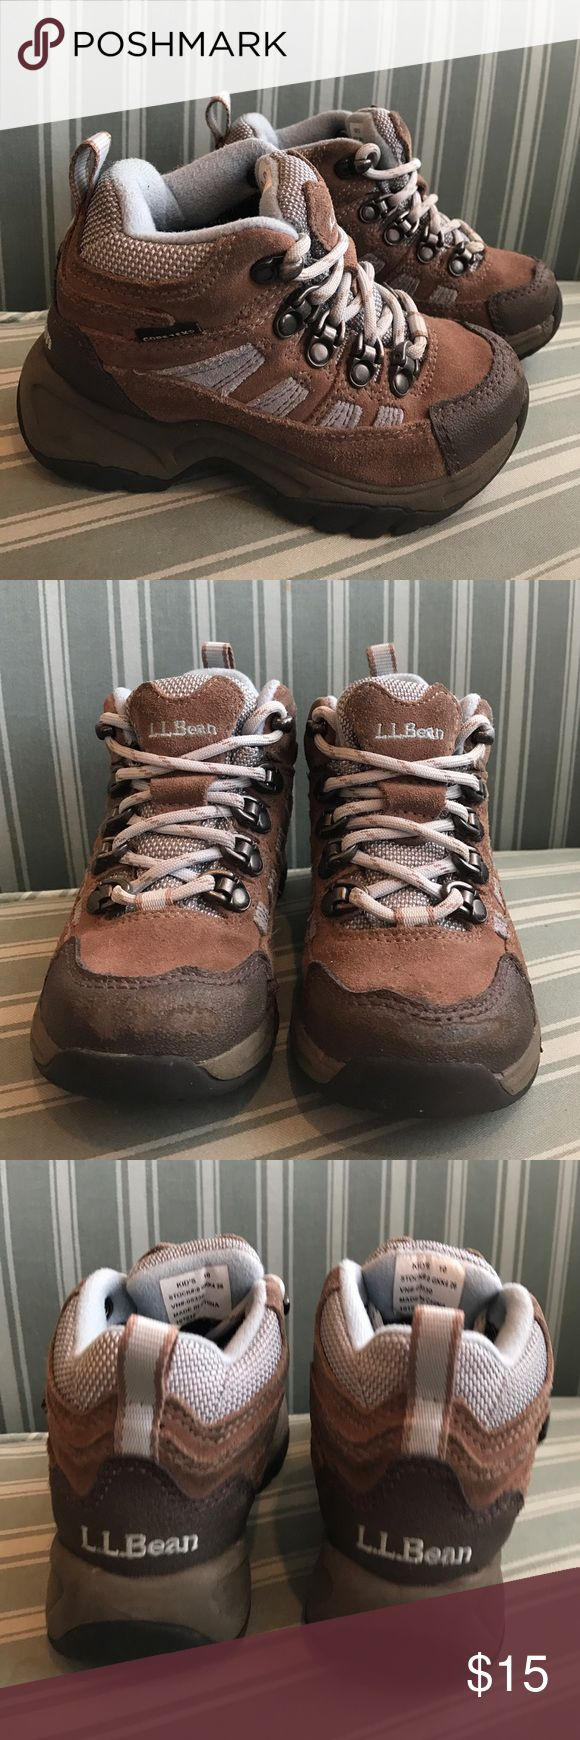 L.L. Bean waterproof hiking boots little boys 10 This is the cutest little pair of hiking boots! They are Gore-Tex waterproof leather boots that lace up. They are a toddler size 10 and are in great shape! L.L. Bean Shoes Boots